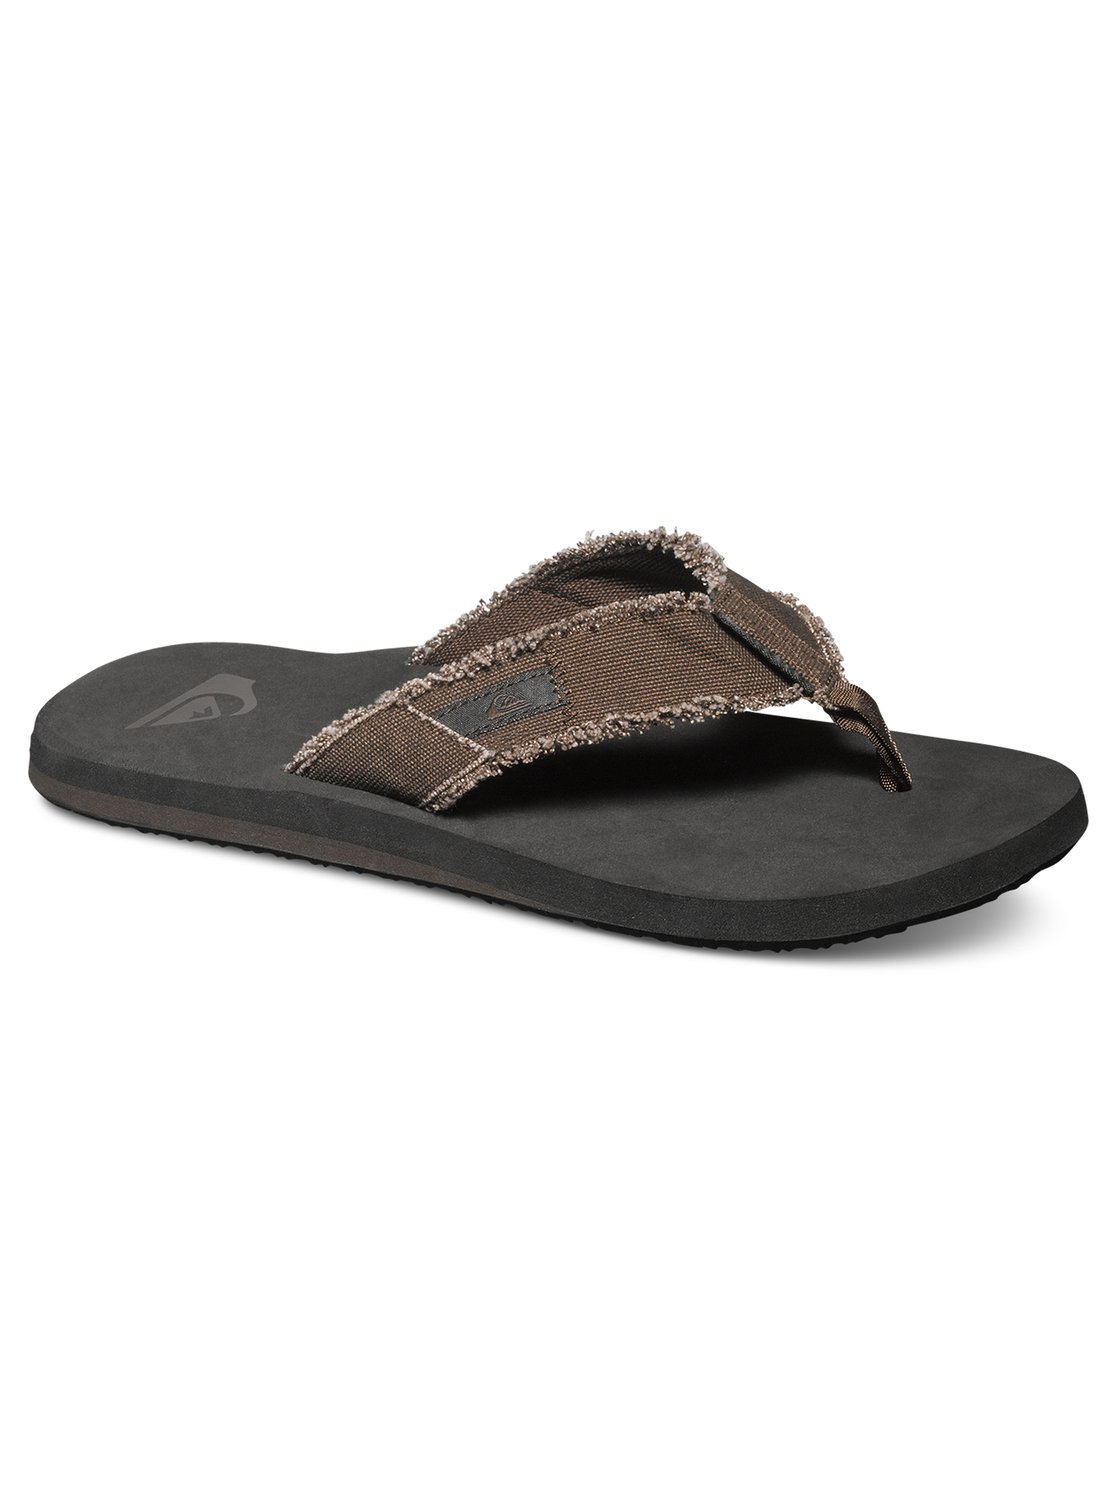 87e3a73ffda4 0 Monkey Abyss - Sandals for Men Brown AQYL100047 Quiksilver